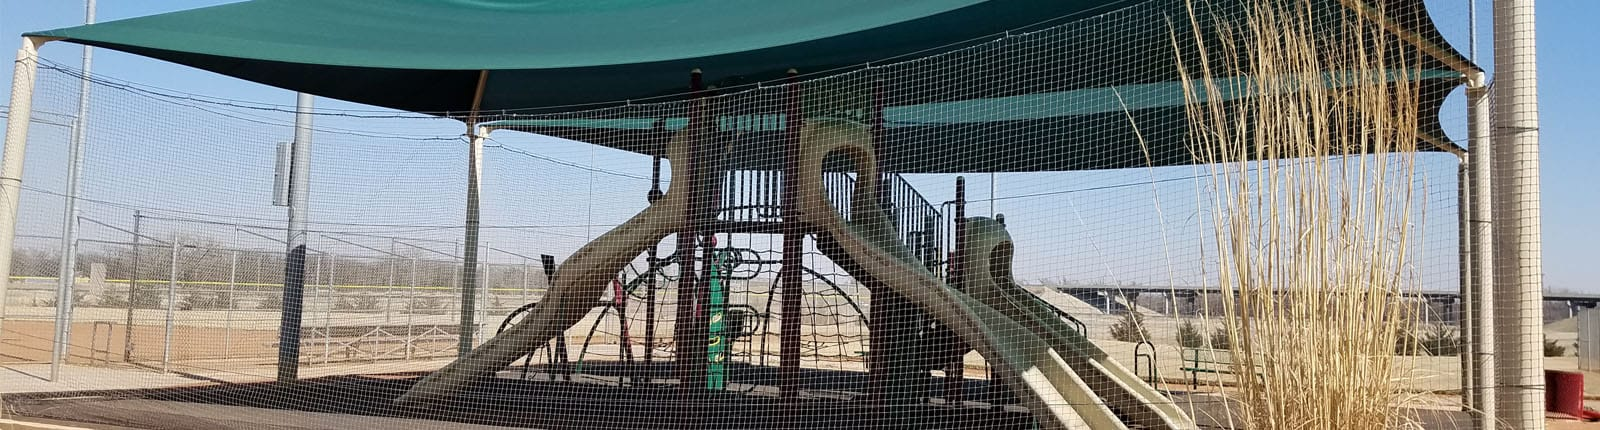 Shade And Shelter Playground Equipment | Sterling West